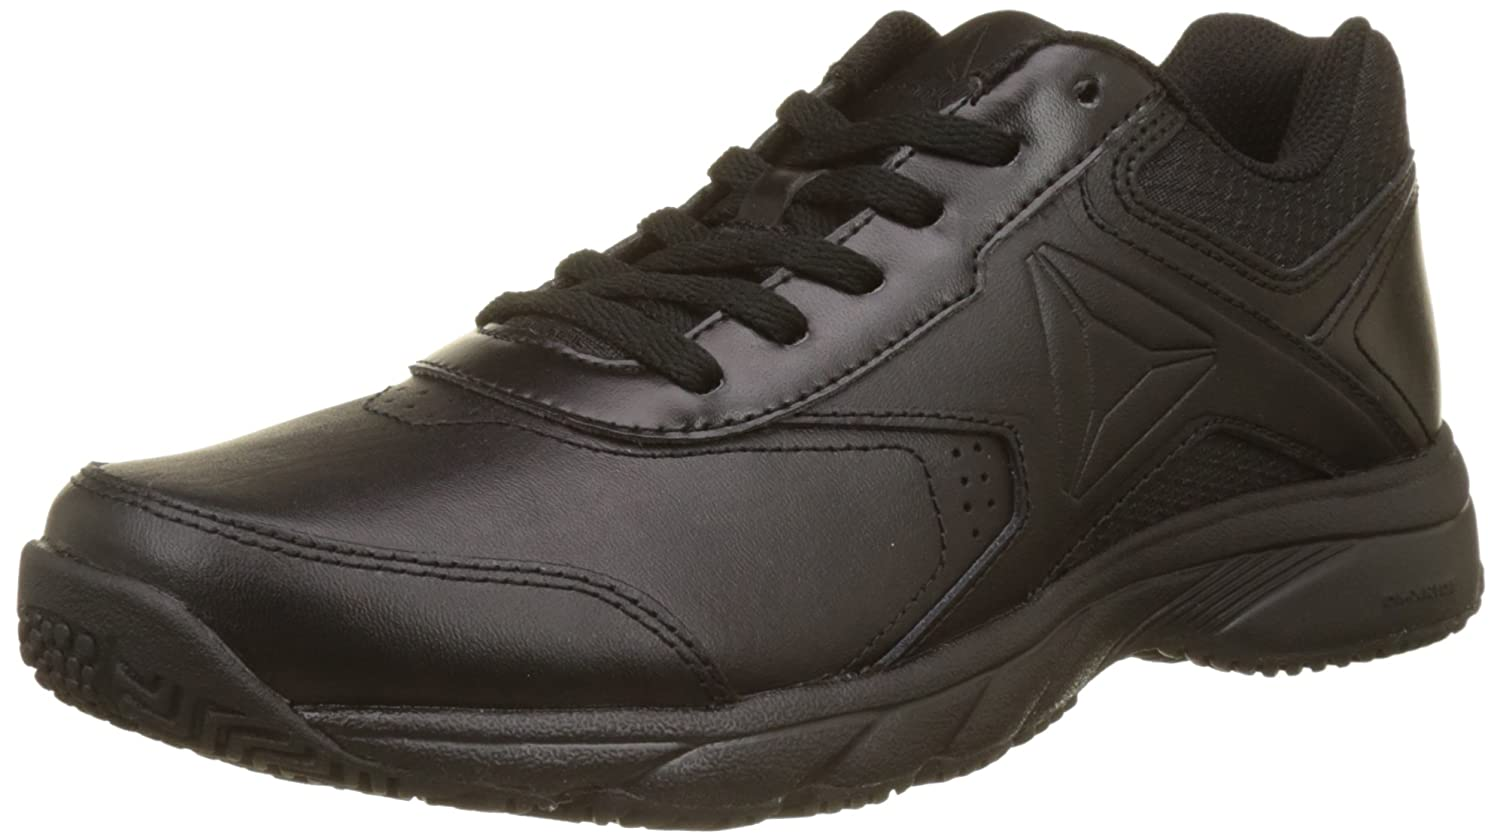 TALLA 39 EU. Reebok Work N Cushion 3.0, Zapatillas de Deporte Unisex Adulto